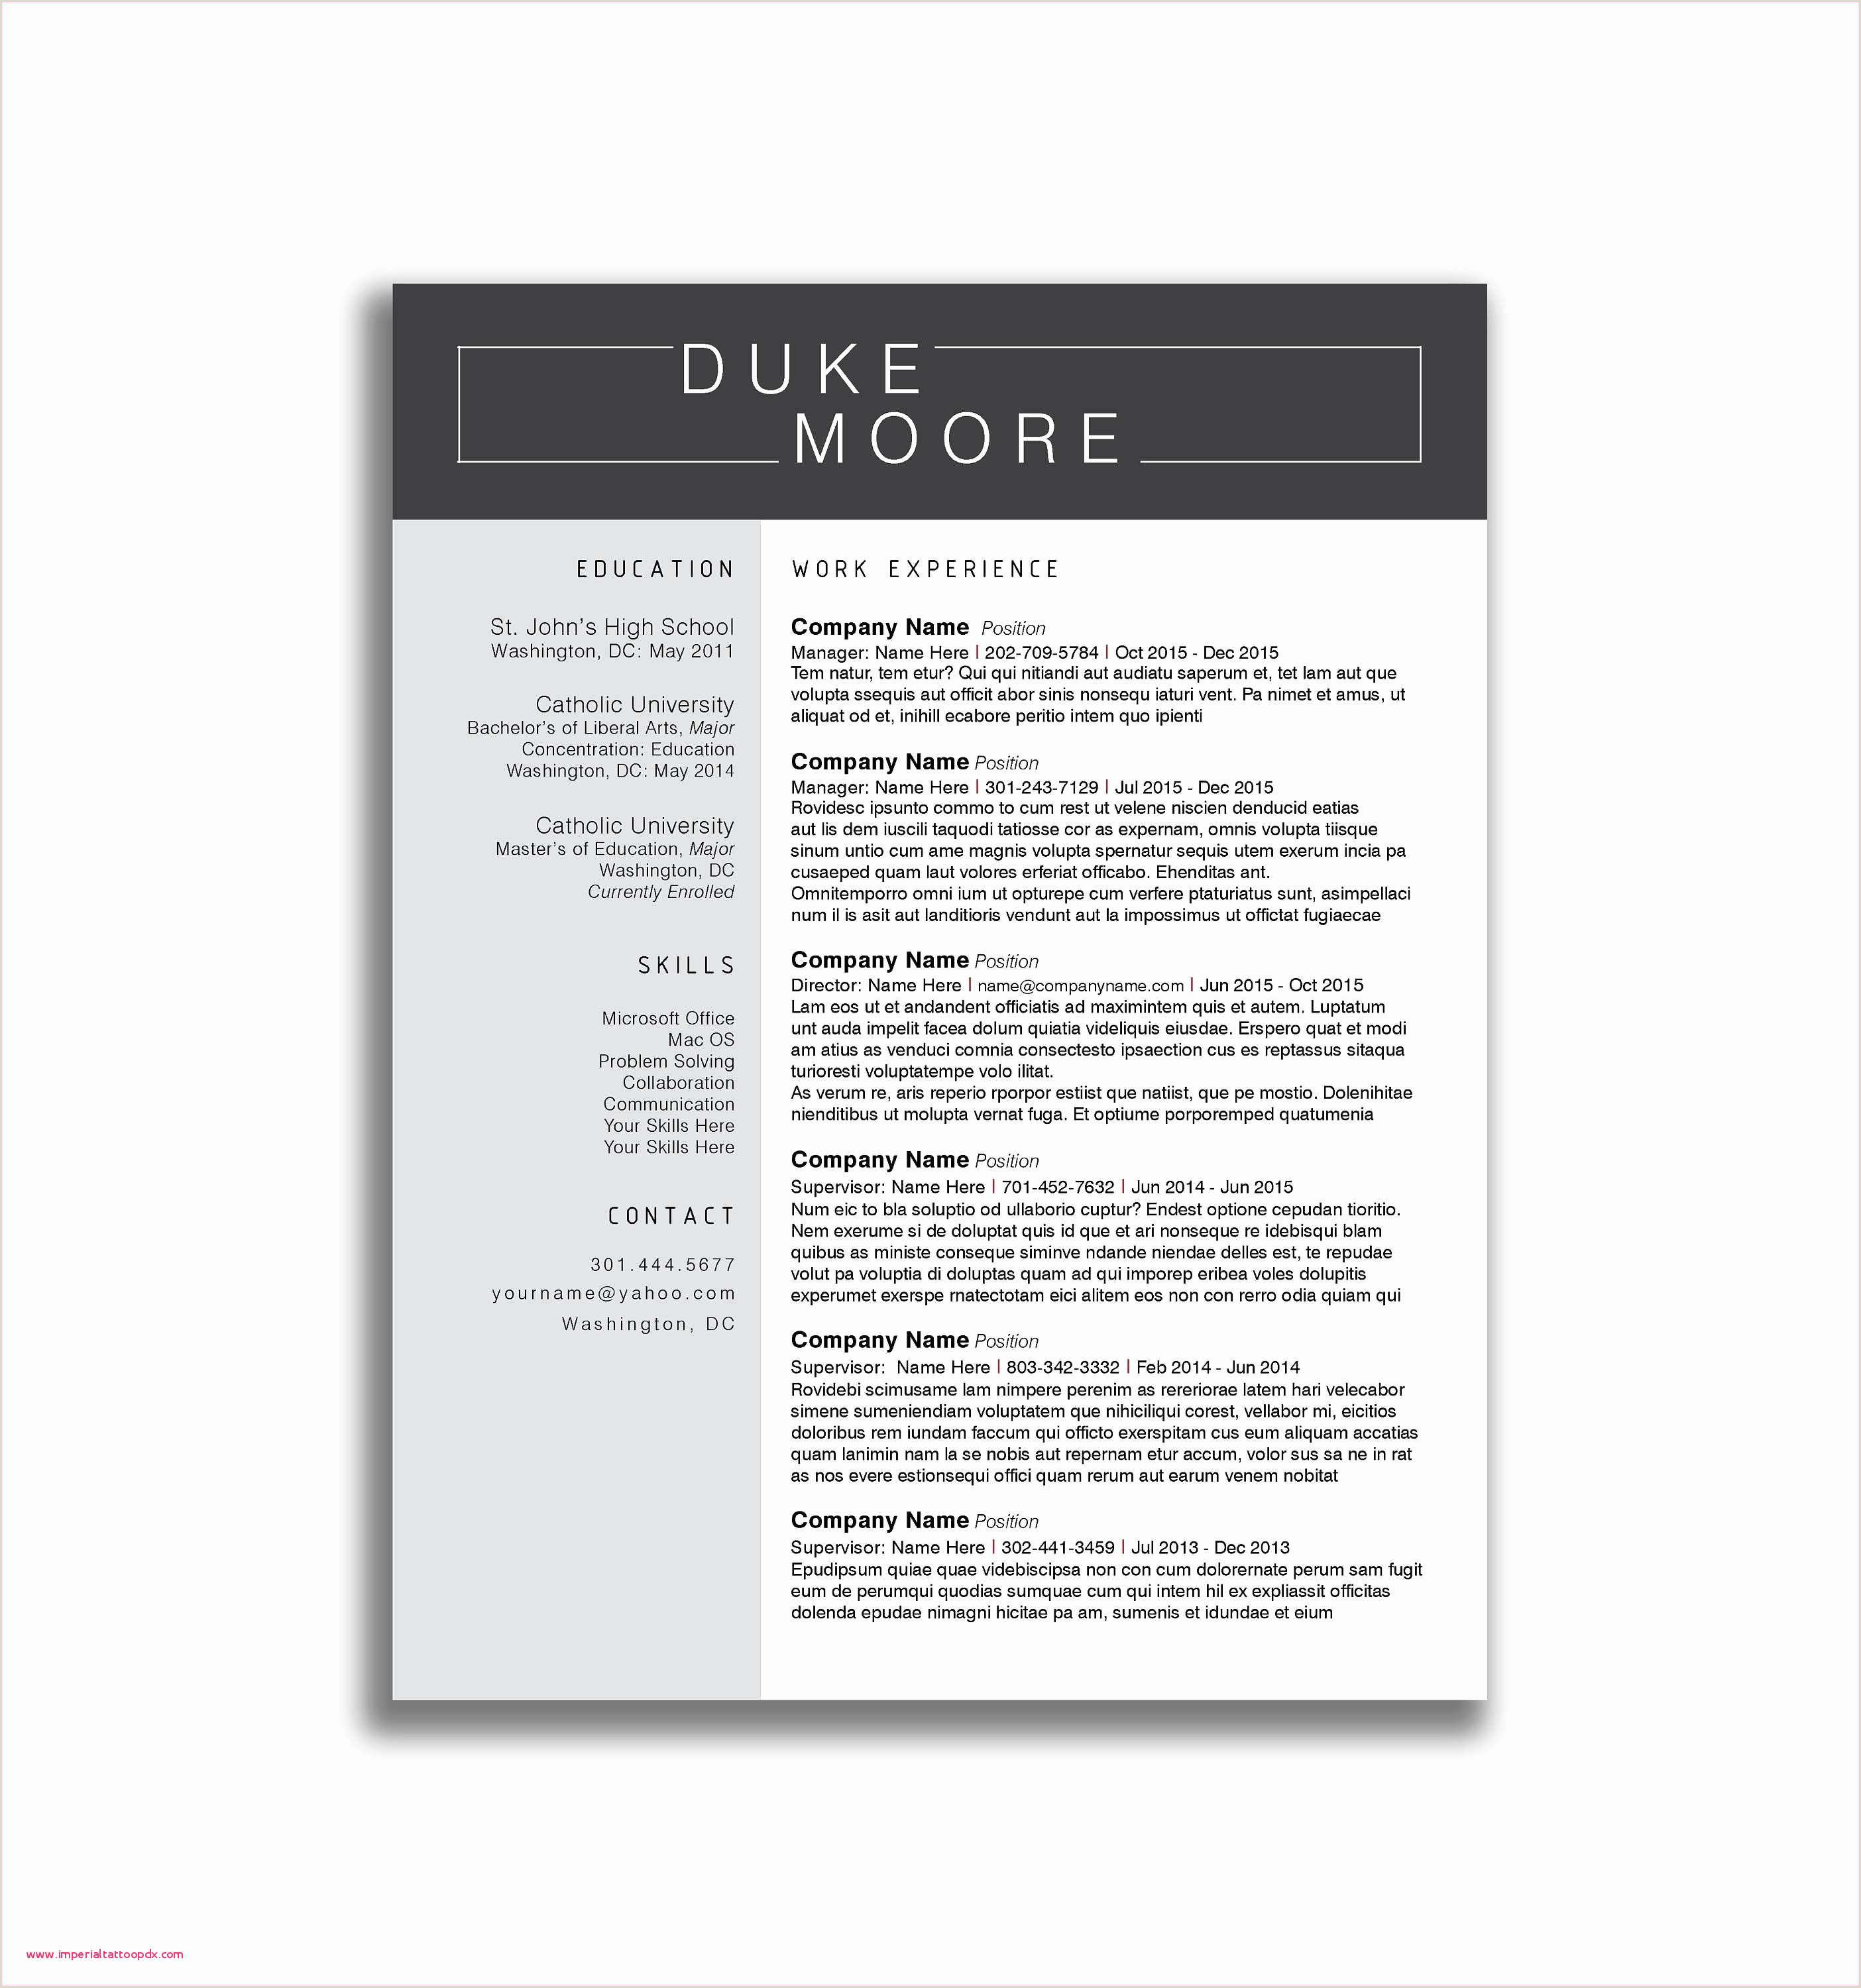 Volunteer Work Resume Example New 24 How to Make A